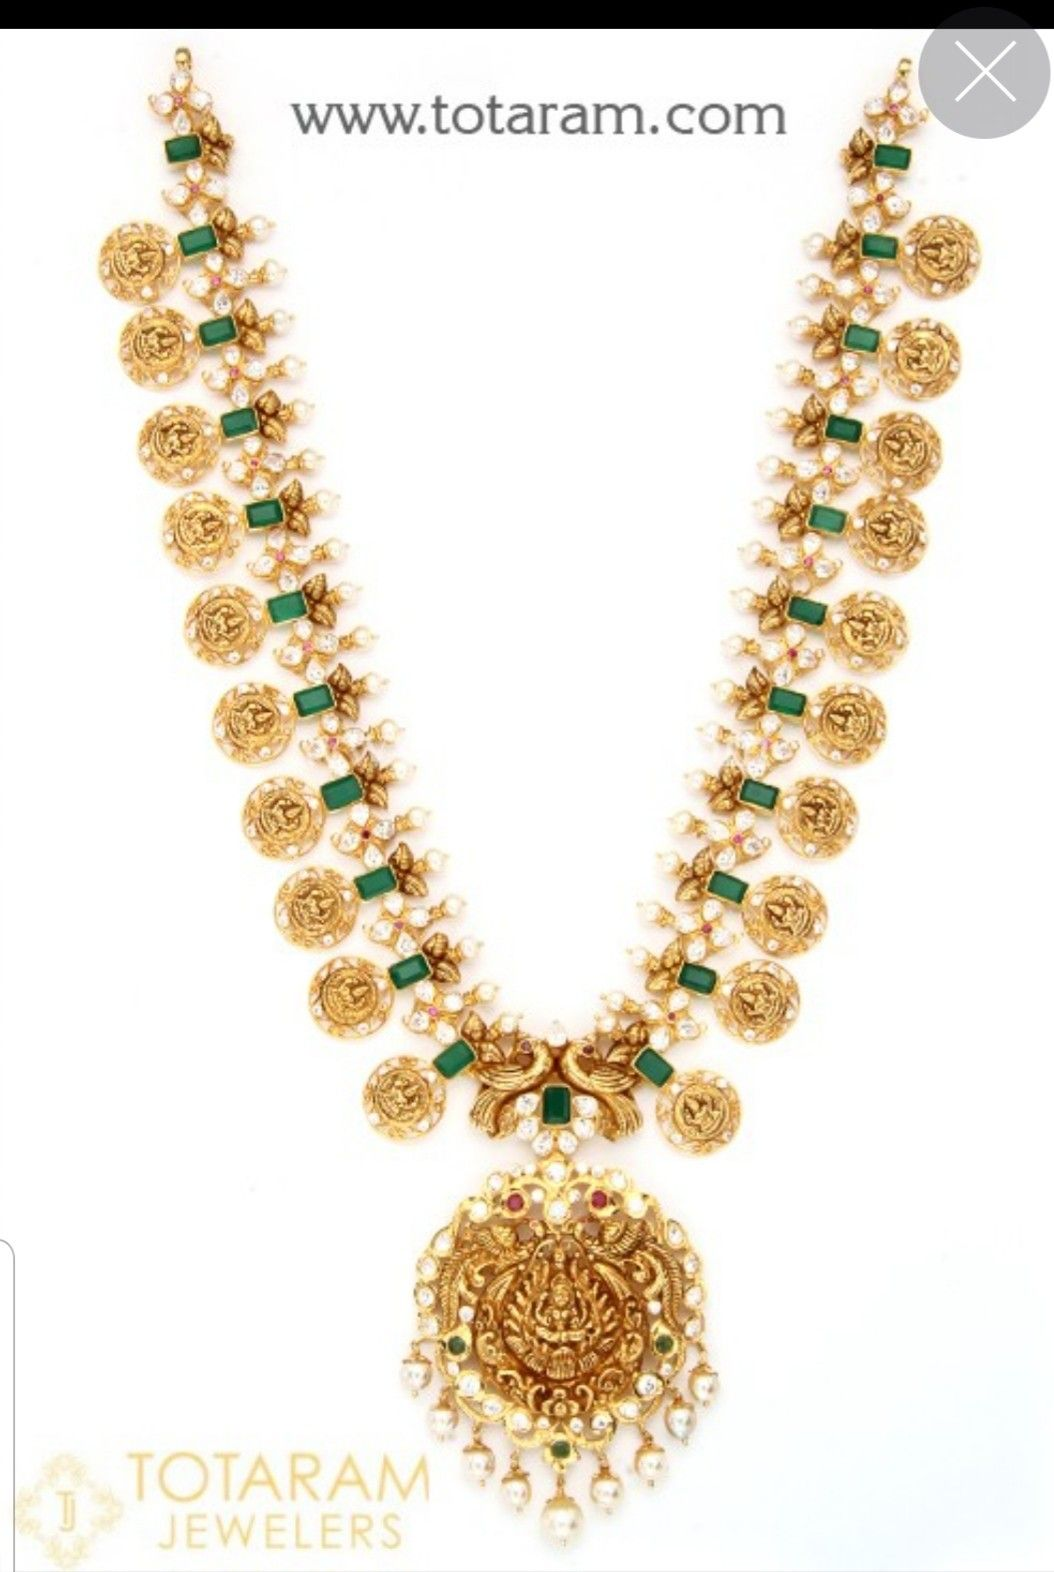 37+ Selling indian gold jewelry in usa info